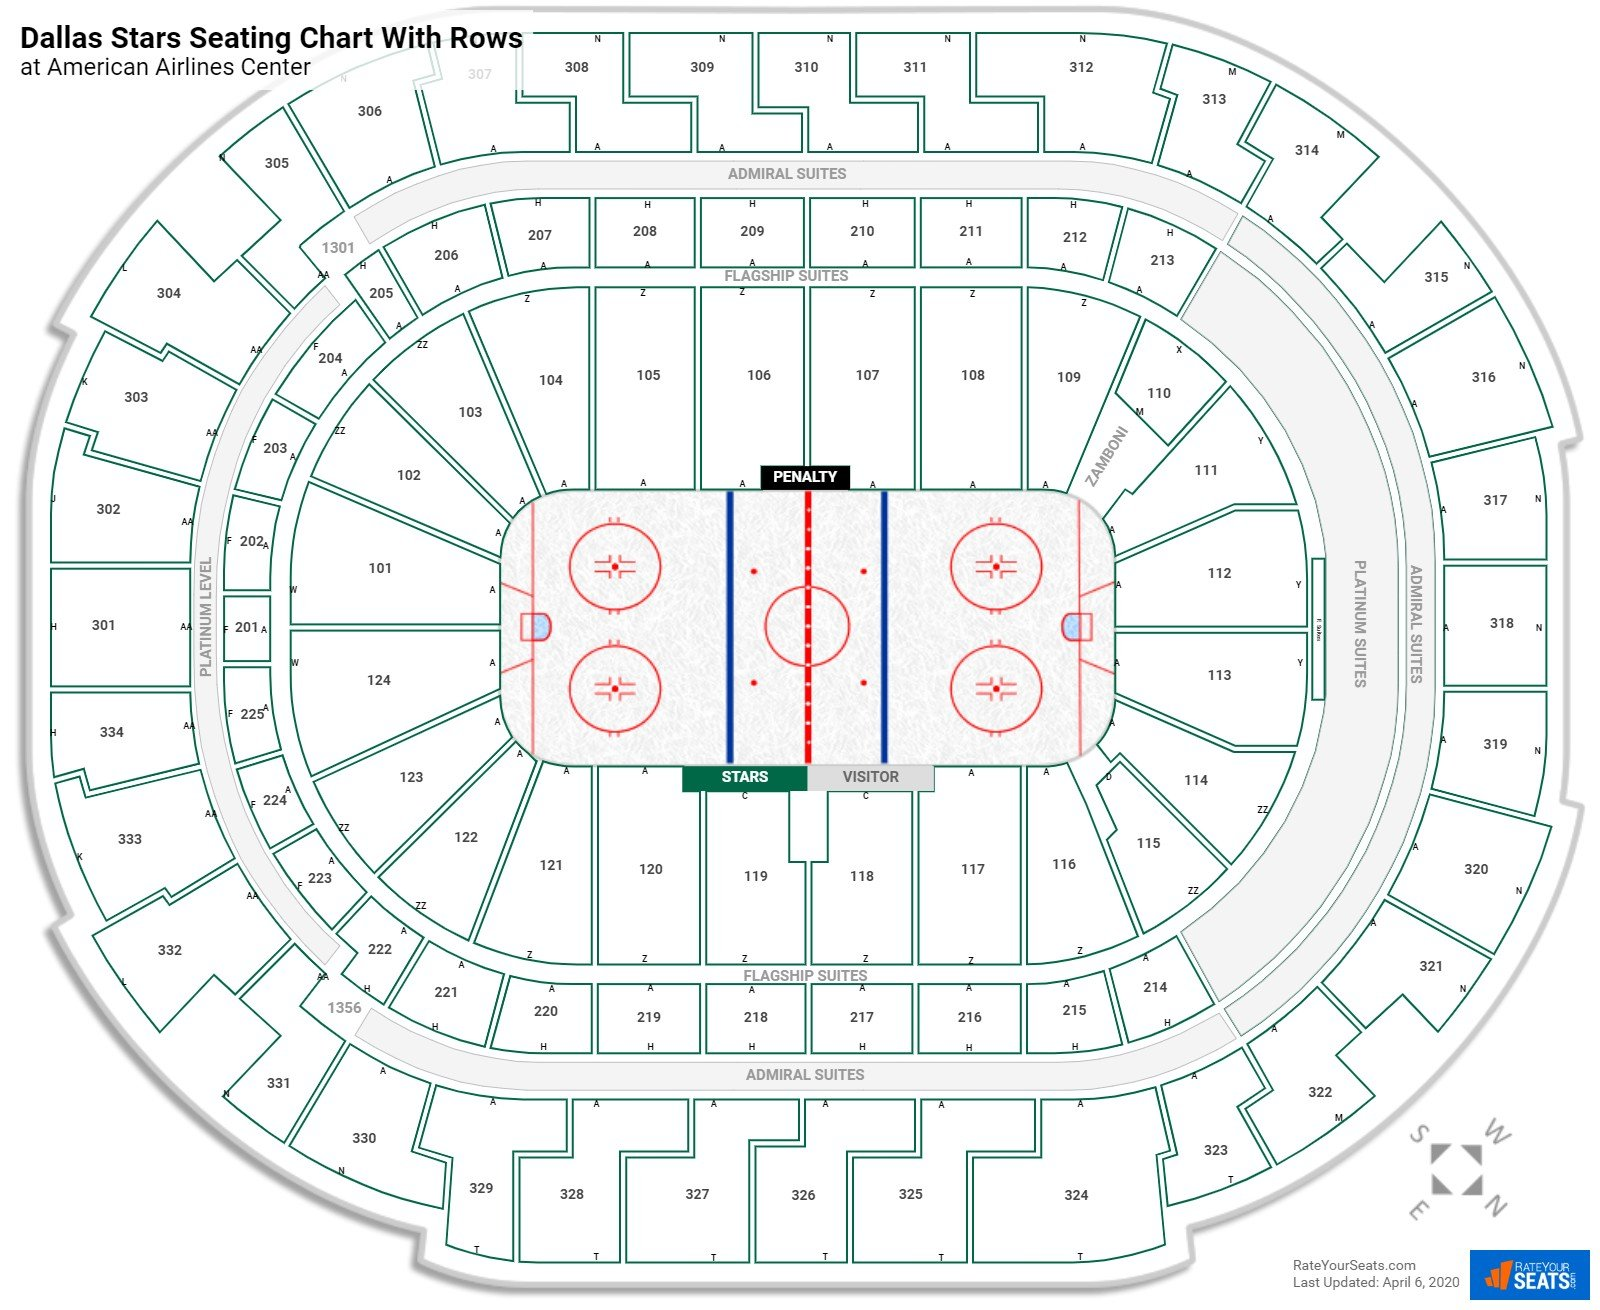 American Airlines Center seating chart with rows hockey